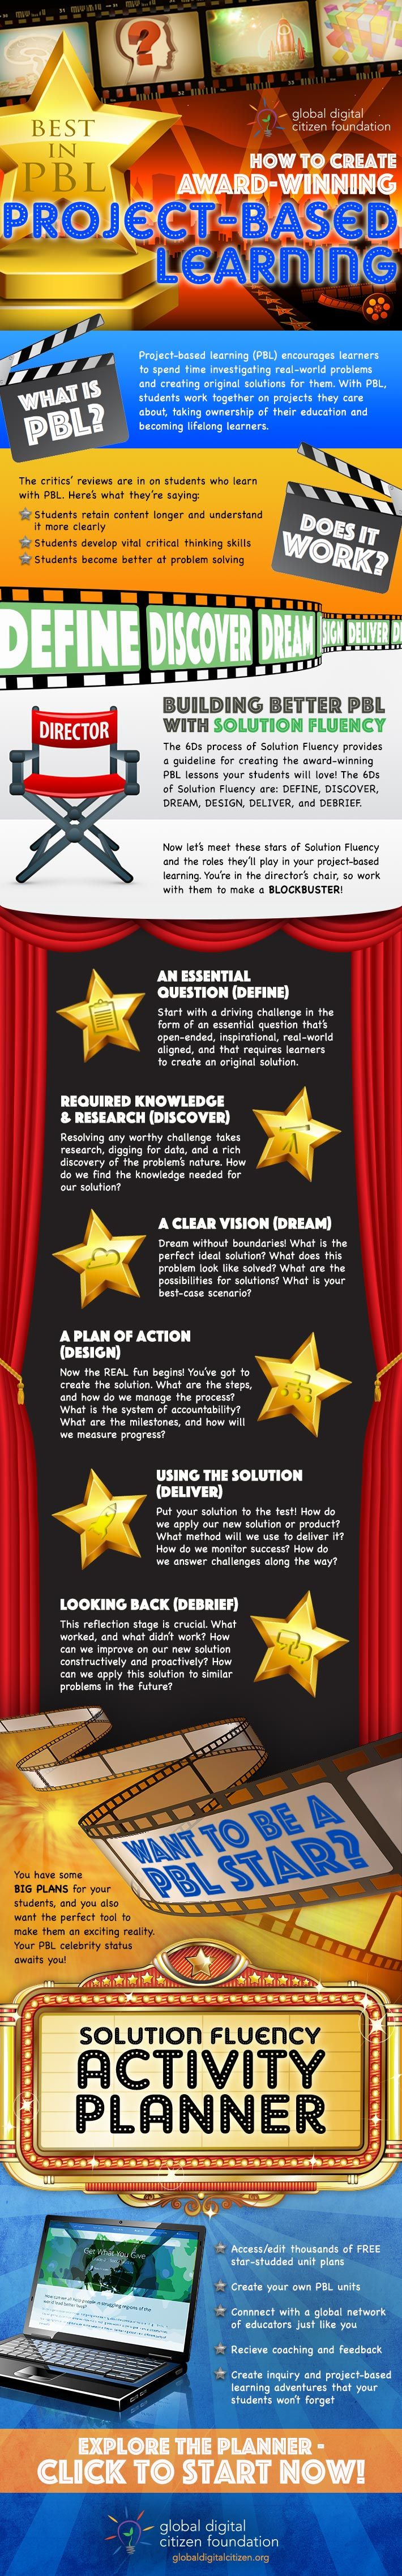 How to Create Award-Winning Project-Based Learning [Infographic]